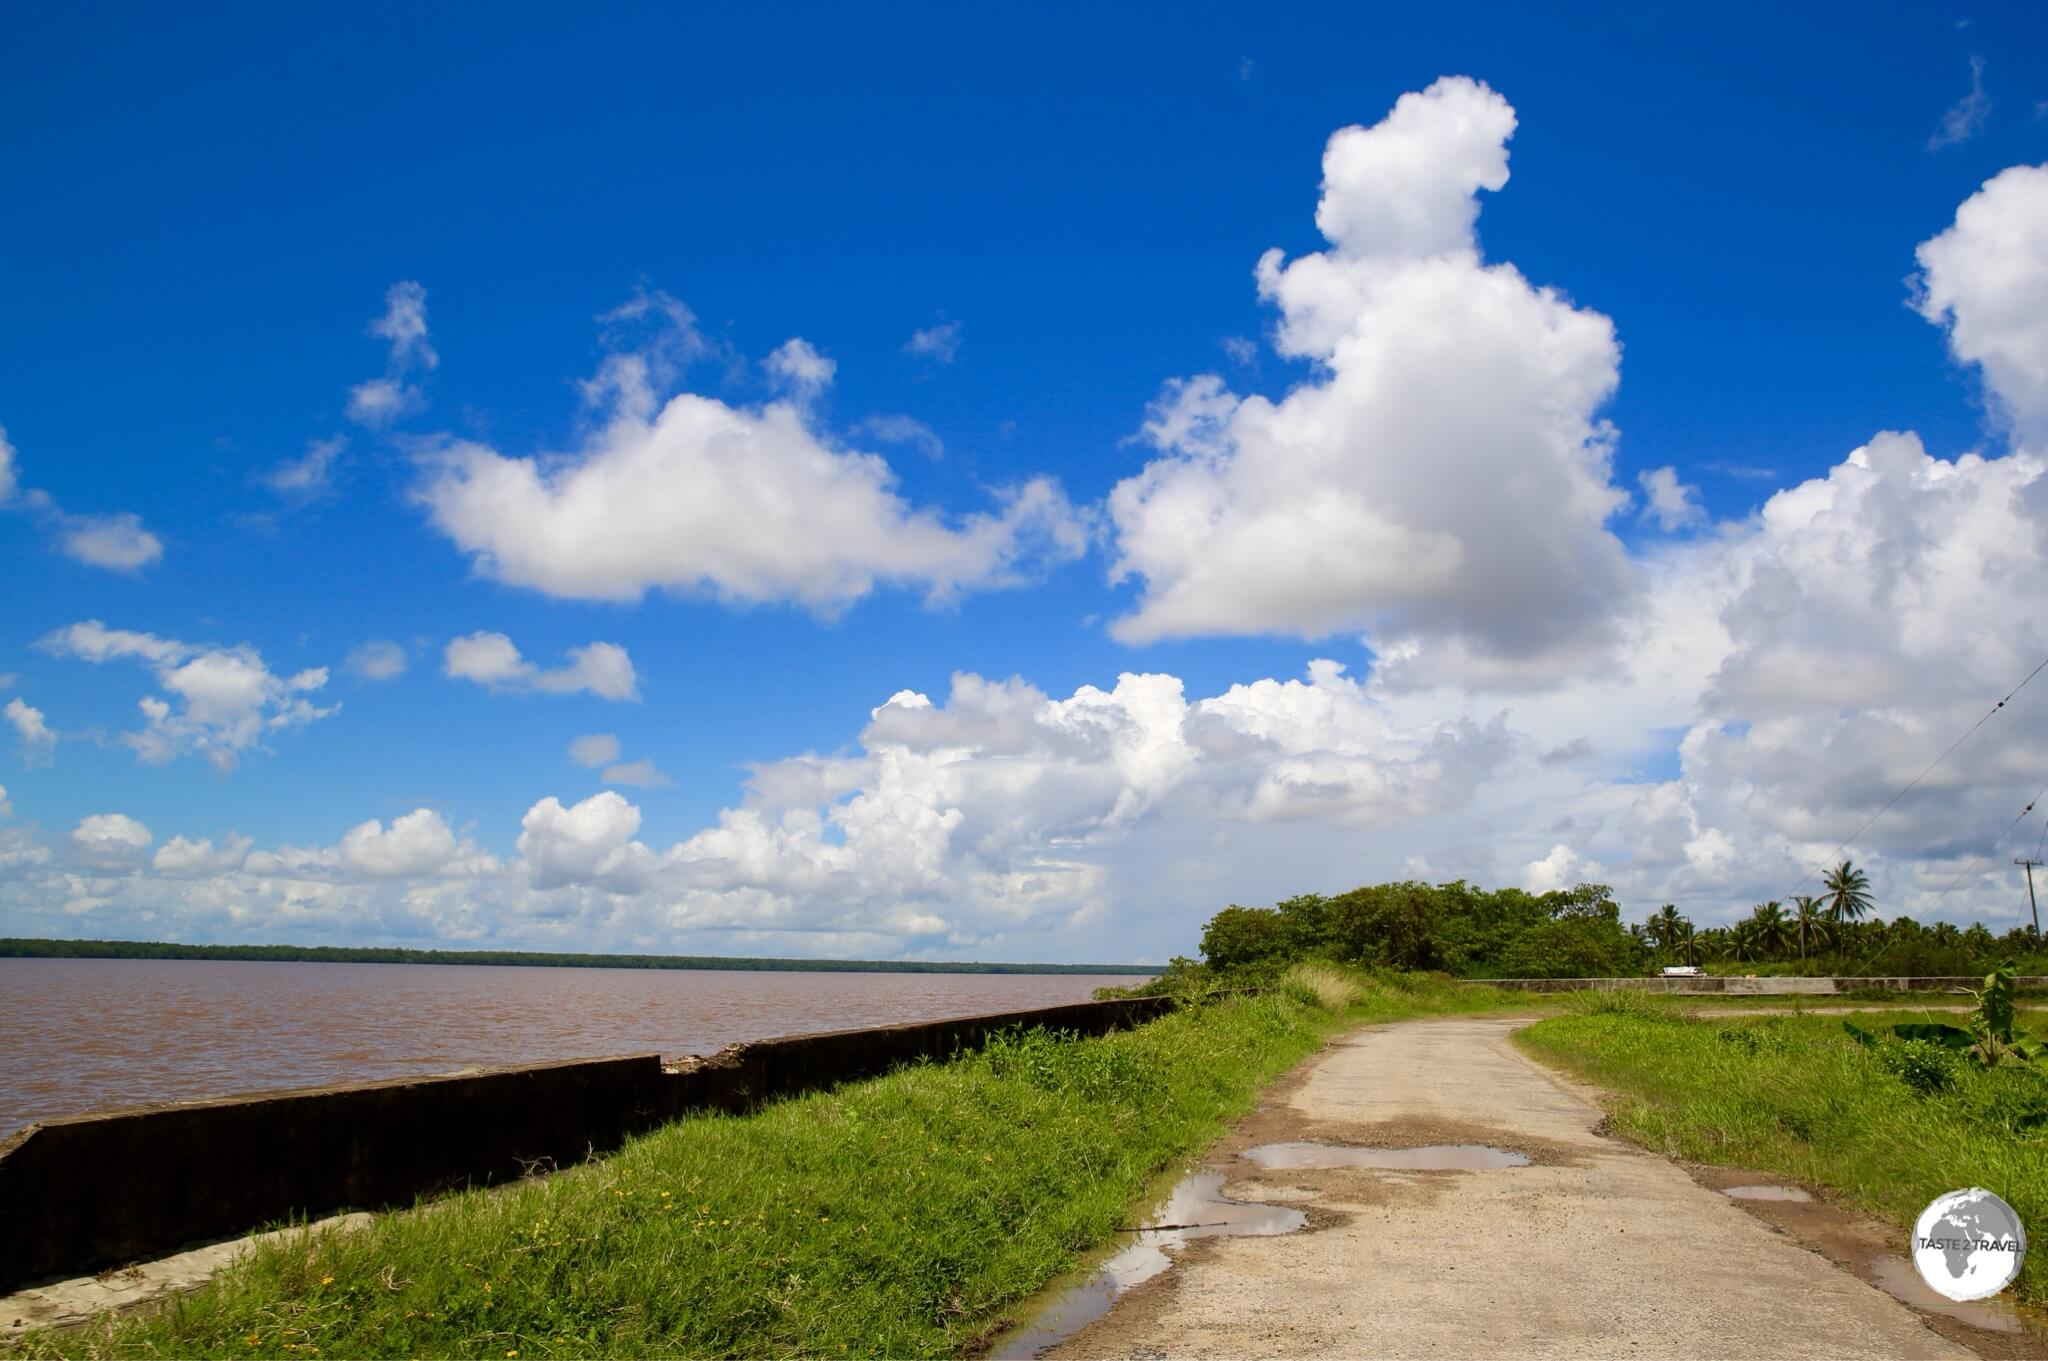 Traveling alongside the seawall of Wakenaam Island with the mighty Essequibo river on the left.